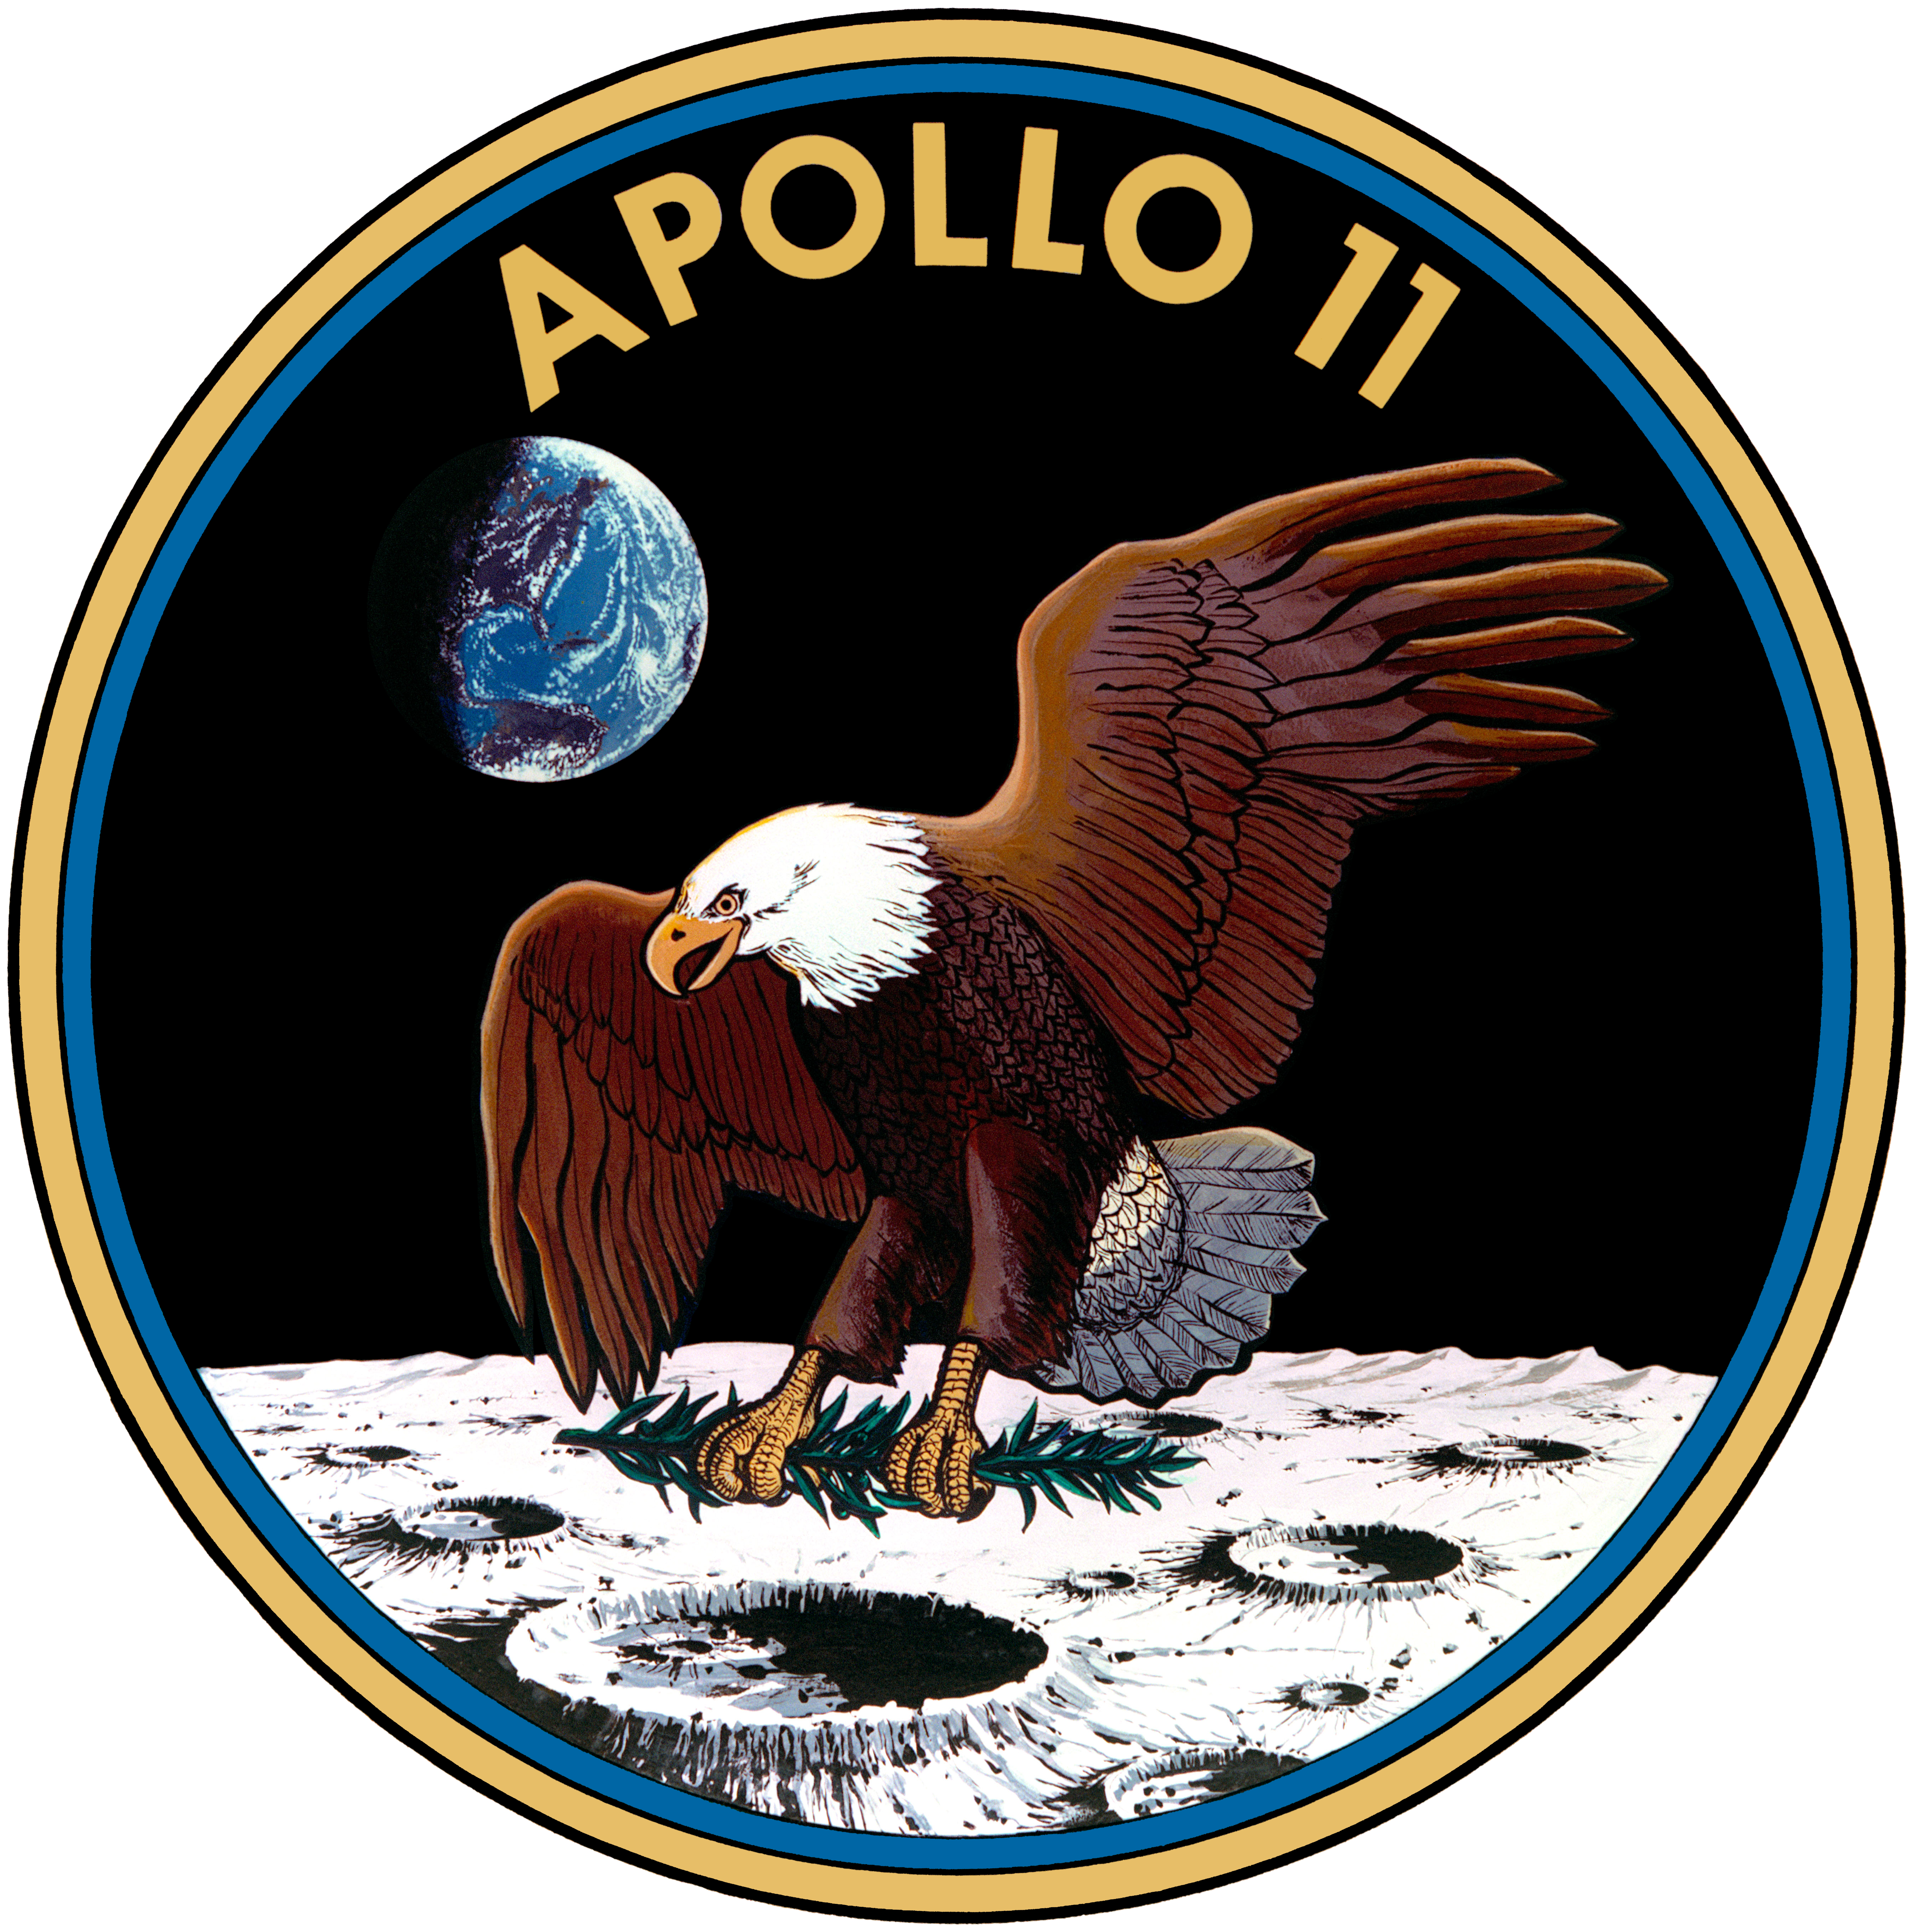 https://upload.wikimedia.org/wikipedia/commons/2/27/Apollo_11_insignia.png